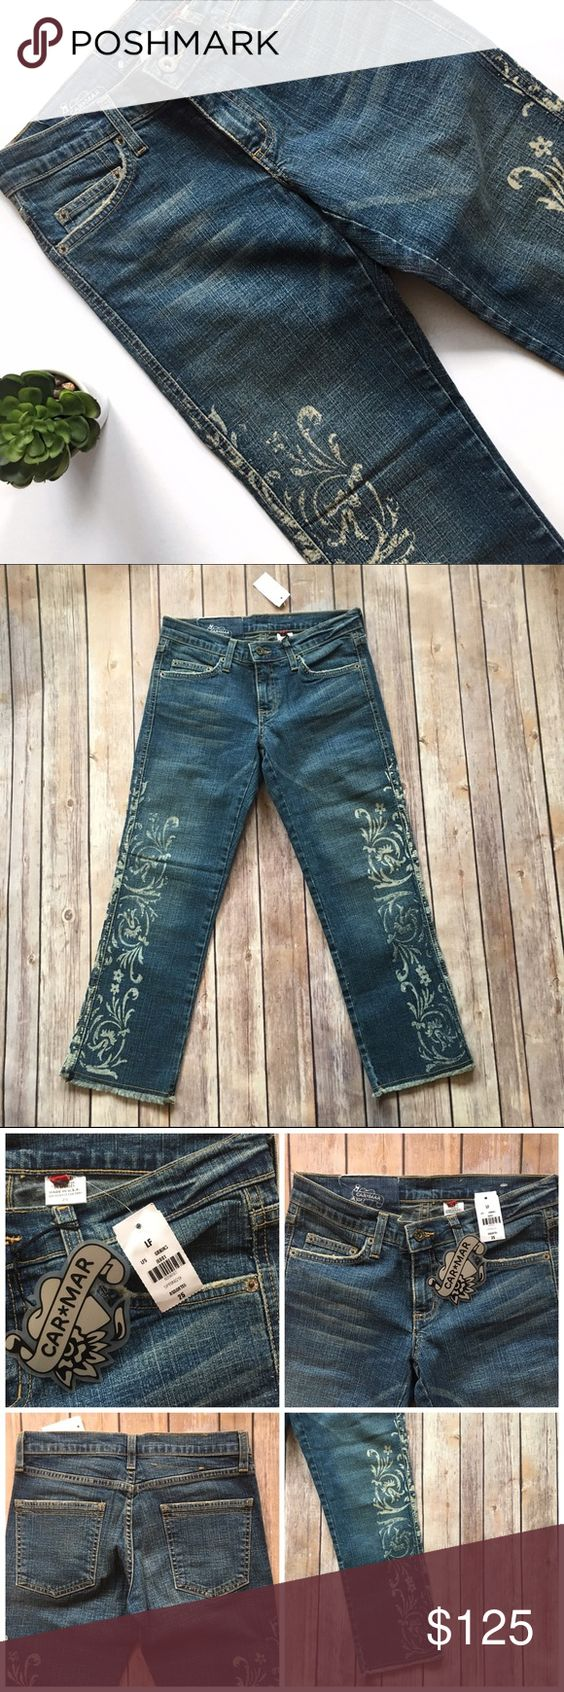 """Car Mar Floral Printed Frayed Crop Jeans LF Stores These are super cute Car Mar cropped jeans from LF Stores. Floral print on the outside of both legs. Cut off, frayed hem. Waist measures approx. 13"""" across, front rise approx. 7.25"""", and inseam approx. 23.5"""". Brand new with tags!  🚫no trades 🚫no modeling ✅dog friendly/🚭smoke free home ✅reasonable offers ✅bundle & save! LF Jeans Ankle & Cropped"""